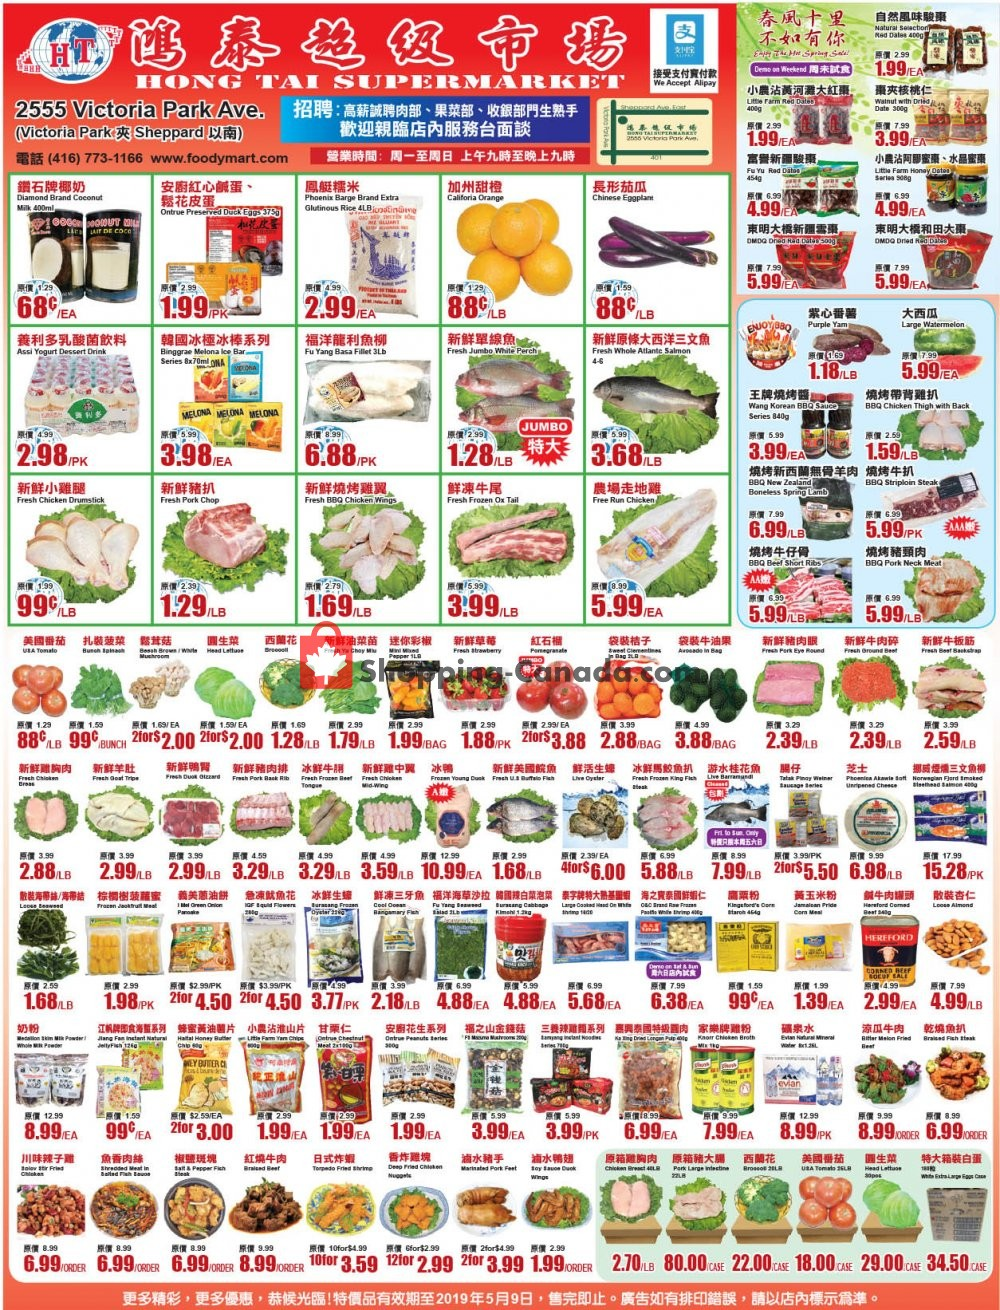 Flyer Foodymart Canada - from Friday May 3, 2019 to Thursday May 9, 2019